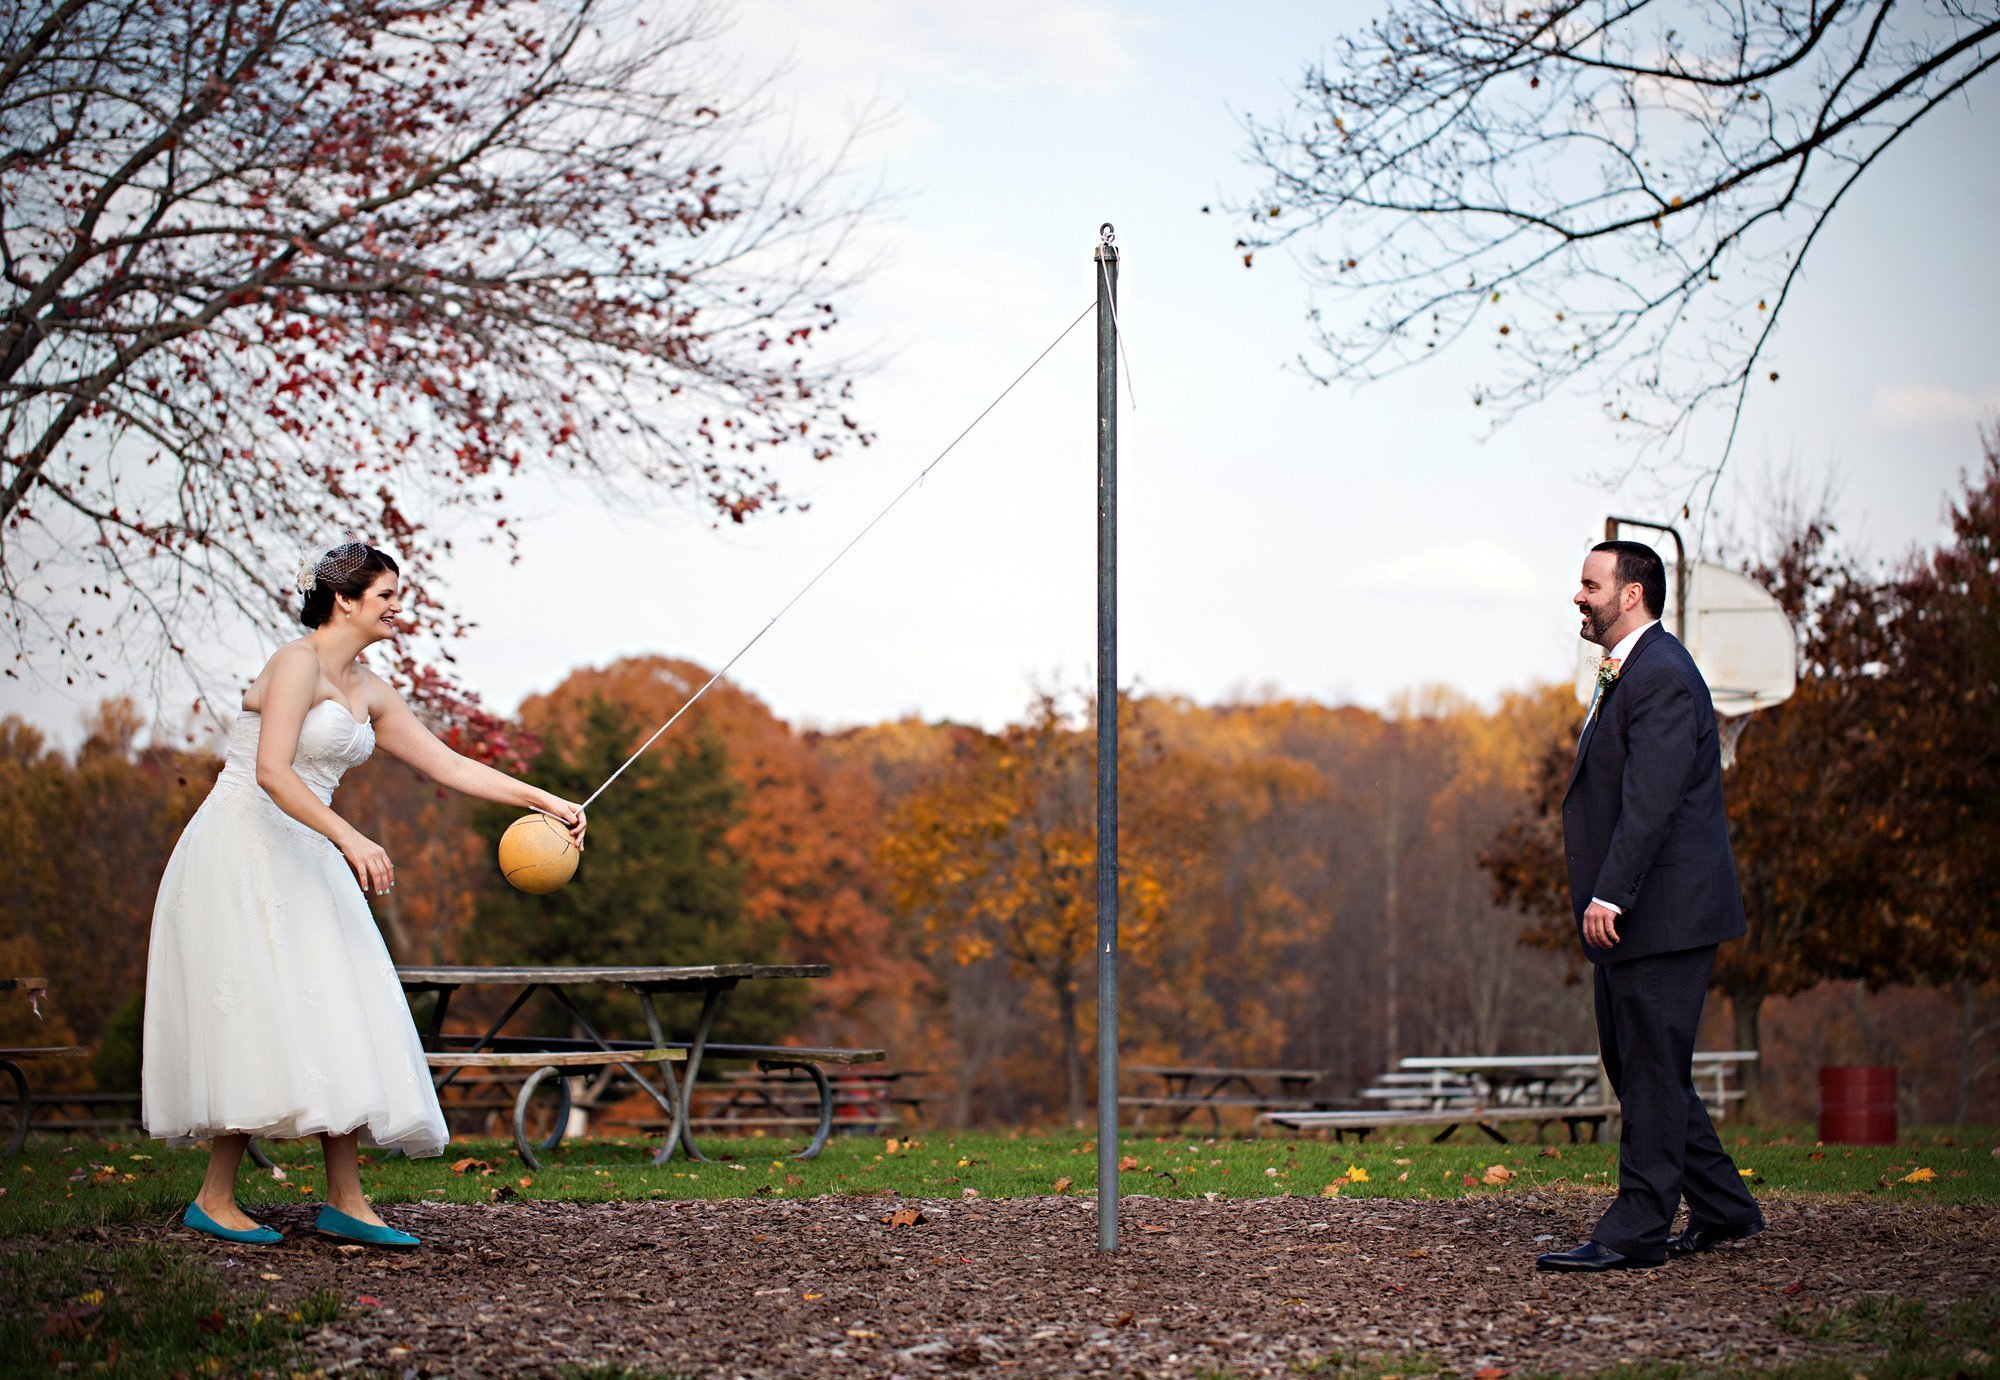 The bride and groom play tetherball after the ceremony during their Smokey Glen Farm wedding.